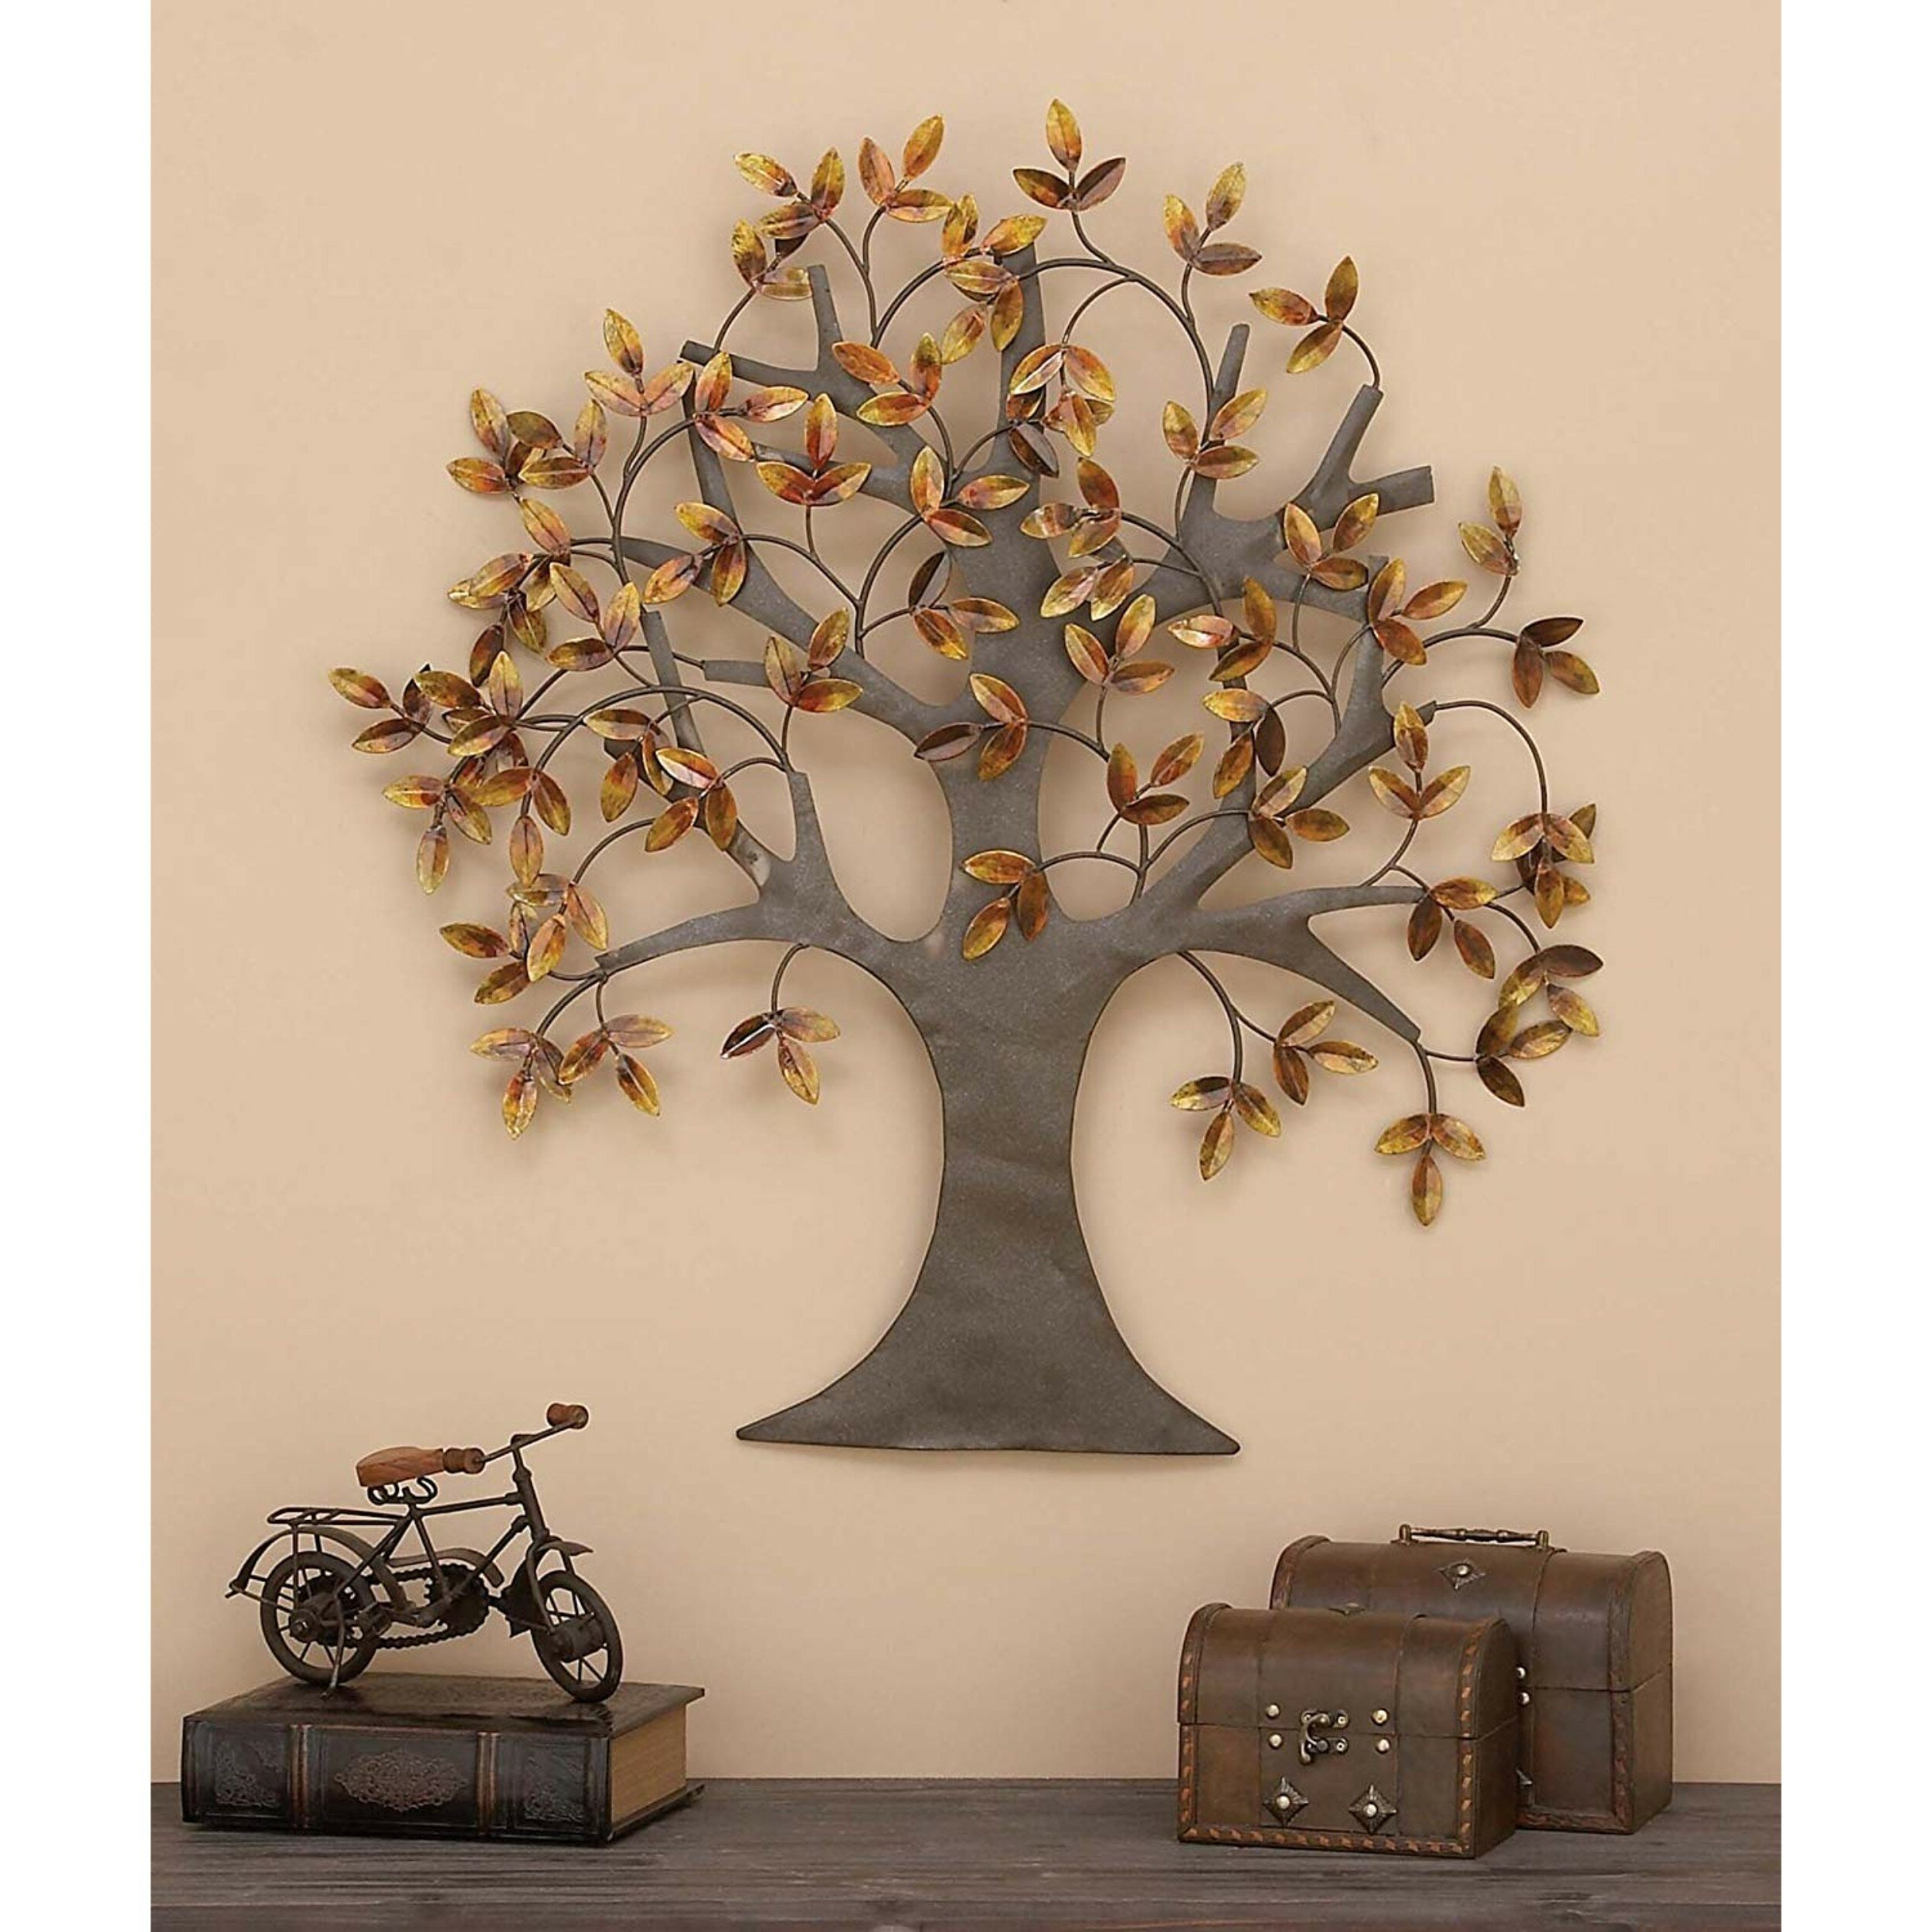 Widely Used Raheem Flowers Metal Wall Decor By Alcott Hill Intended For Cole & Grey Arbor Wall Décor & Reviews (View 10 of 20)